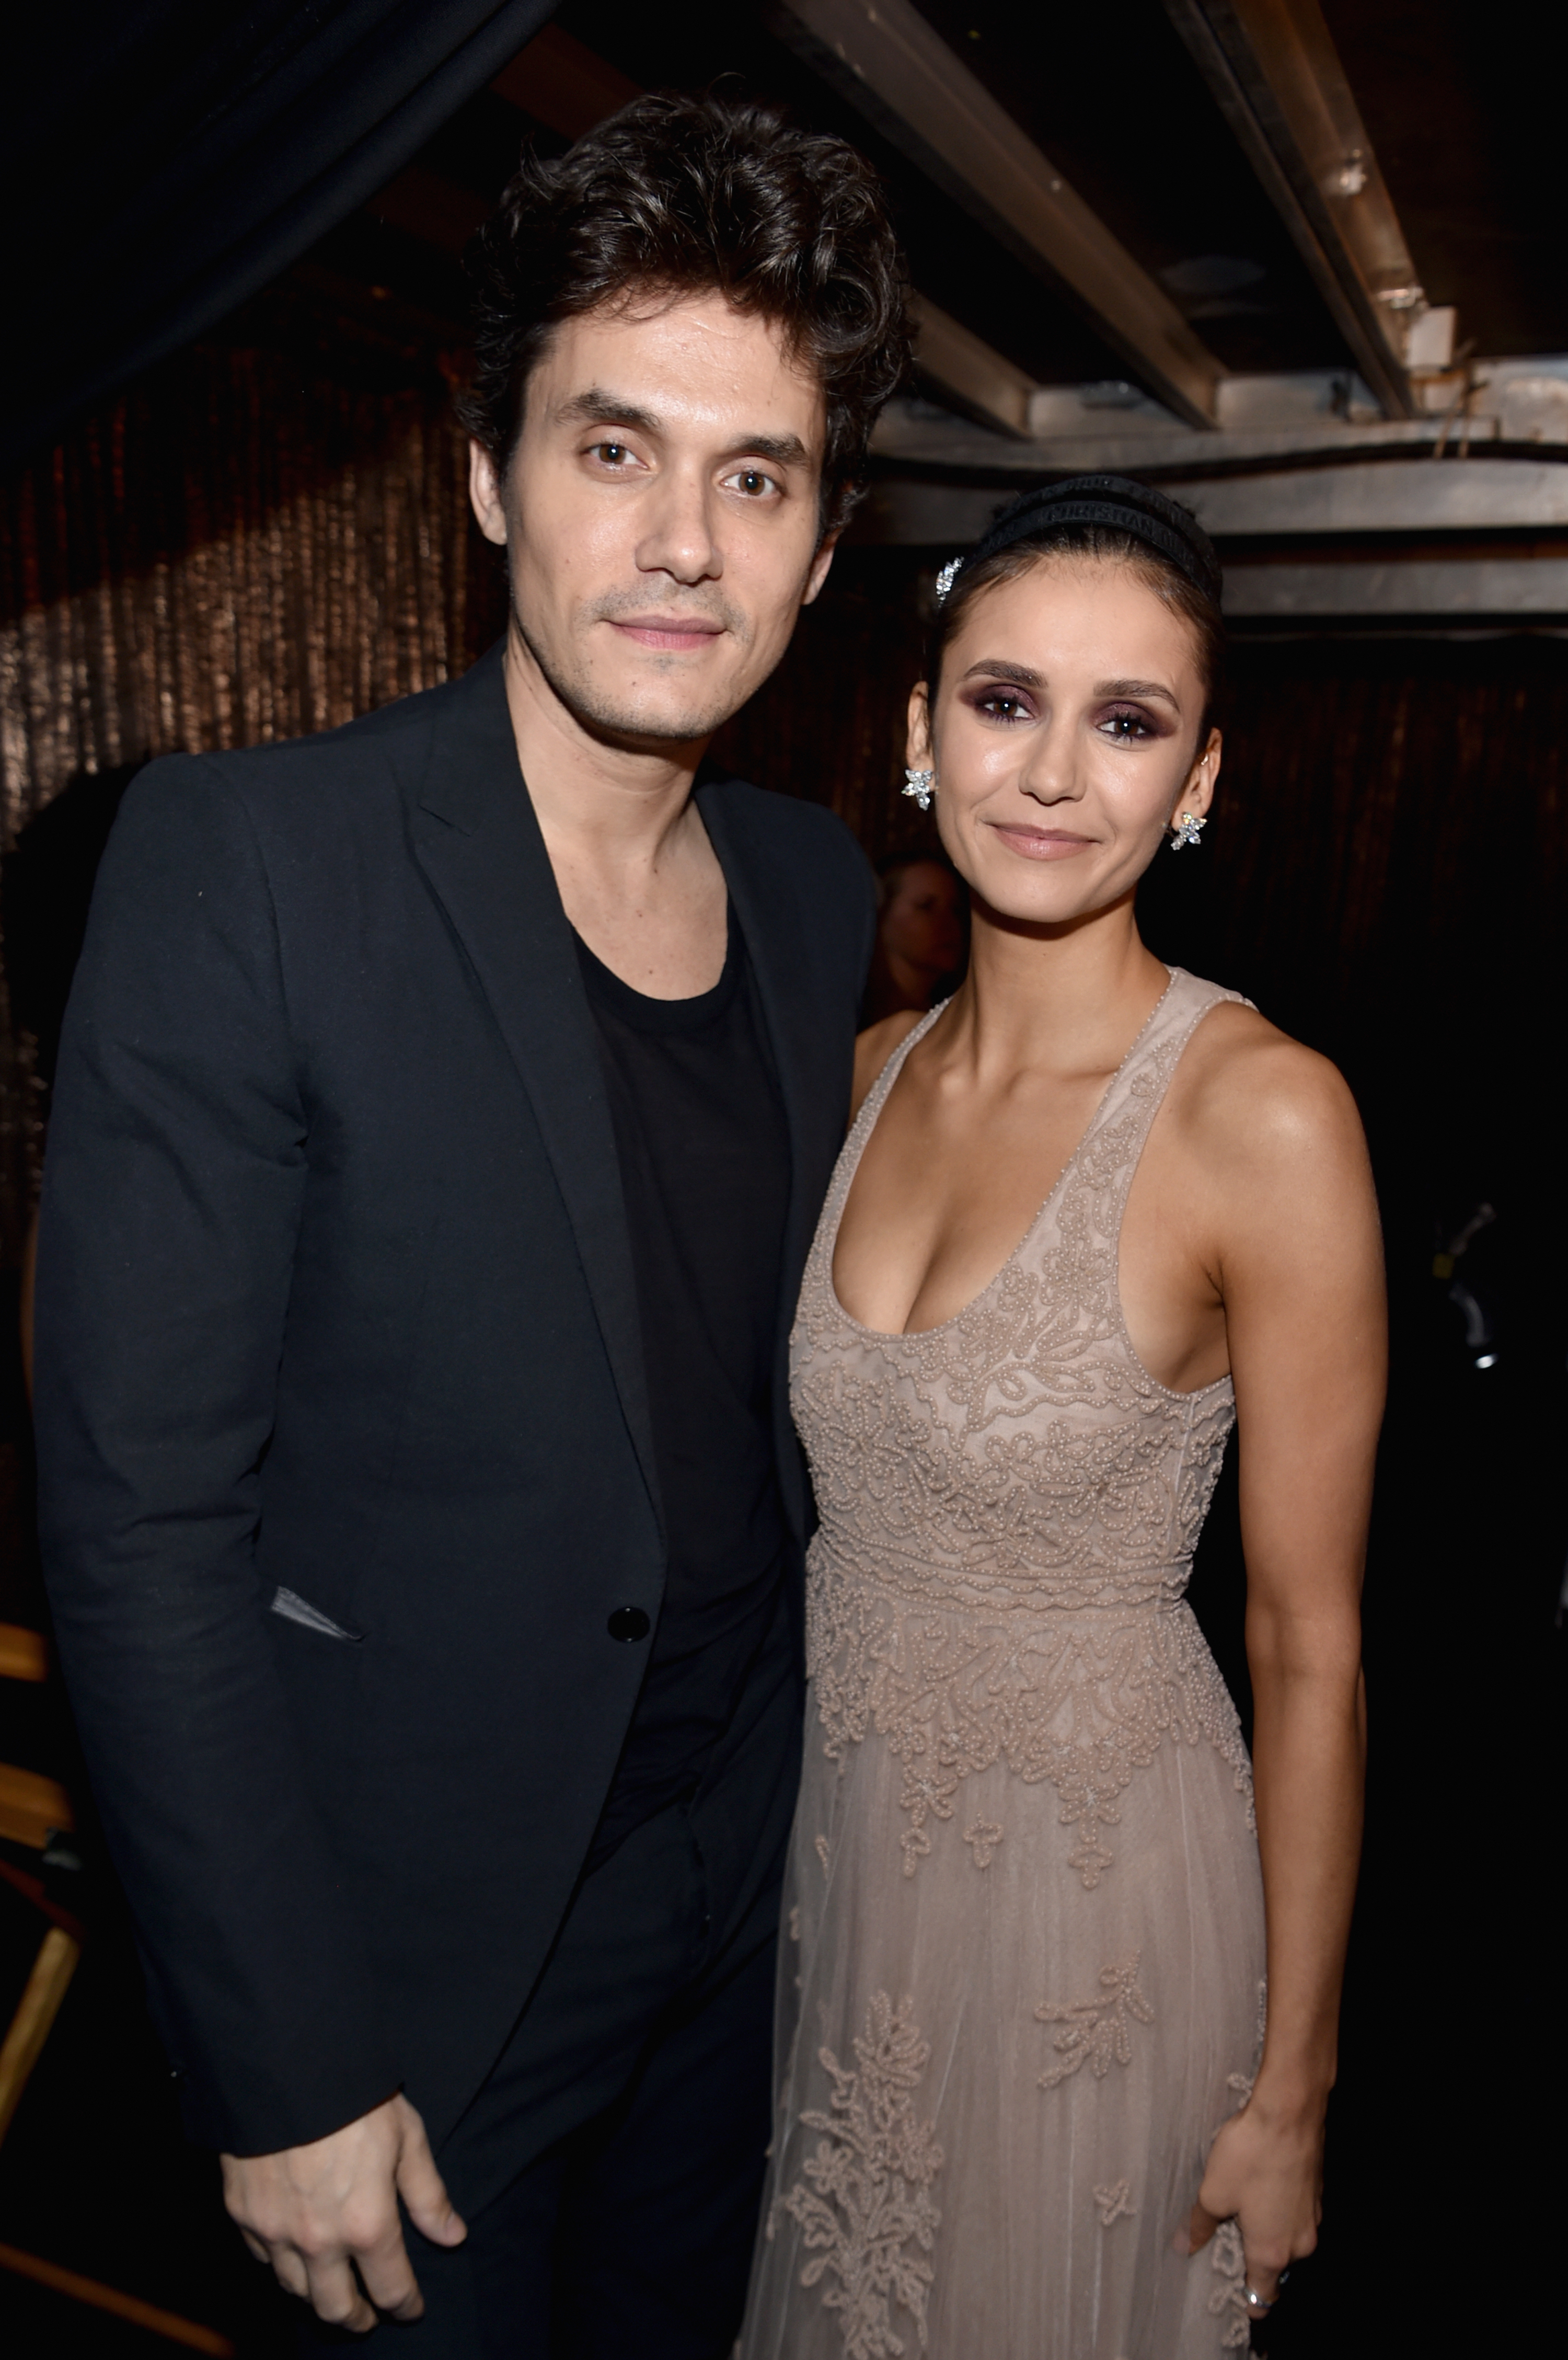 John Mayer and Nina Dobrev attend the 61st Grammy Awards at Staples Center in Los Angeles on Feb. 10, 2019.